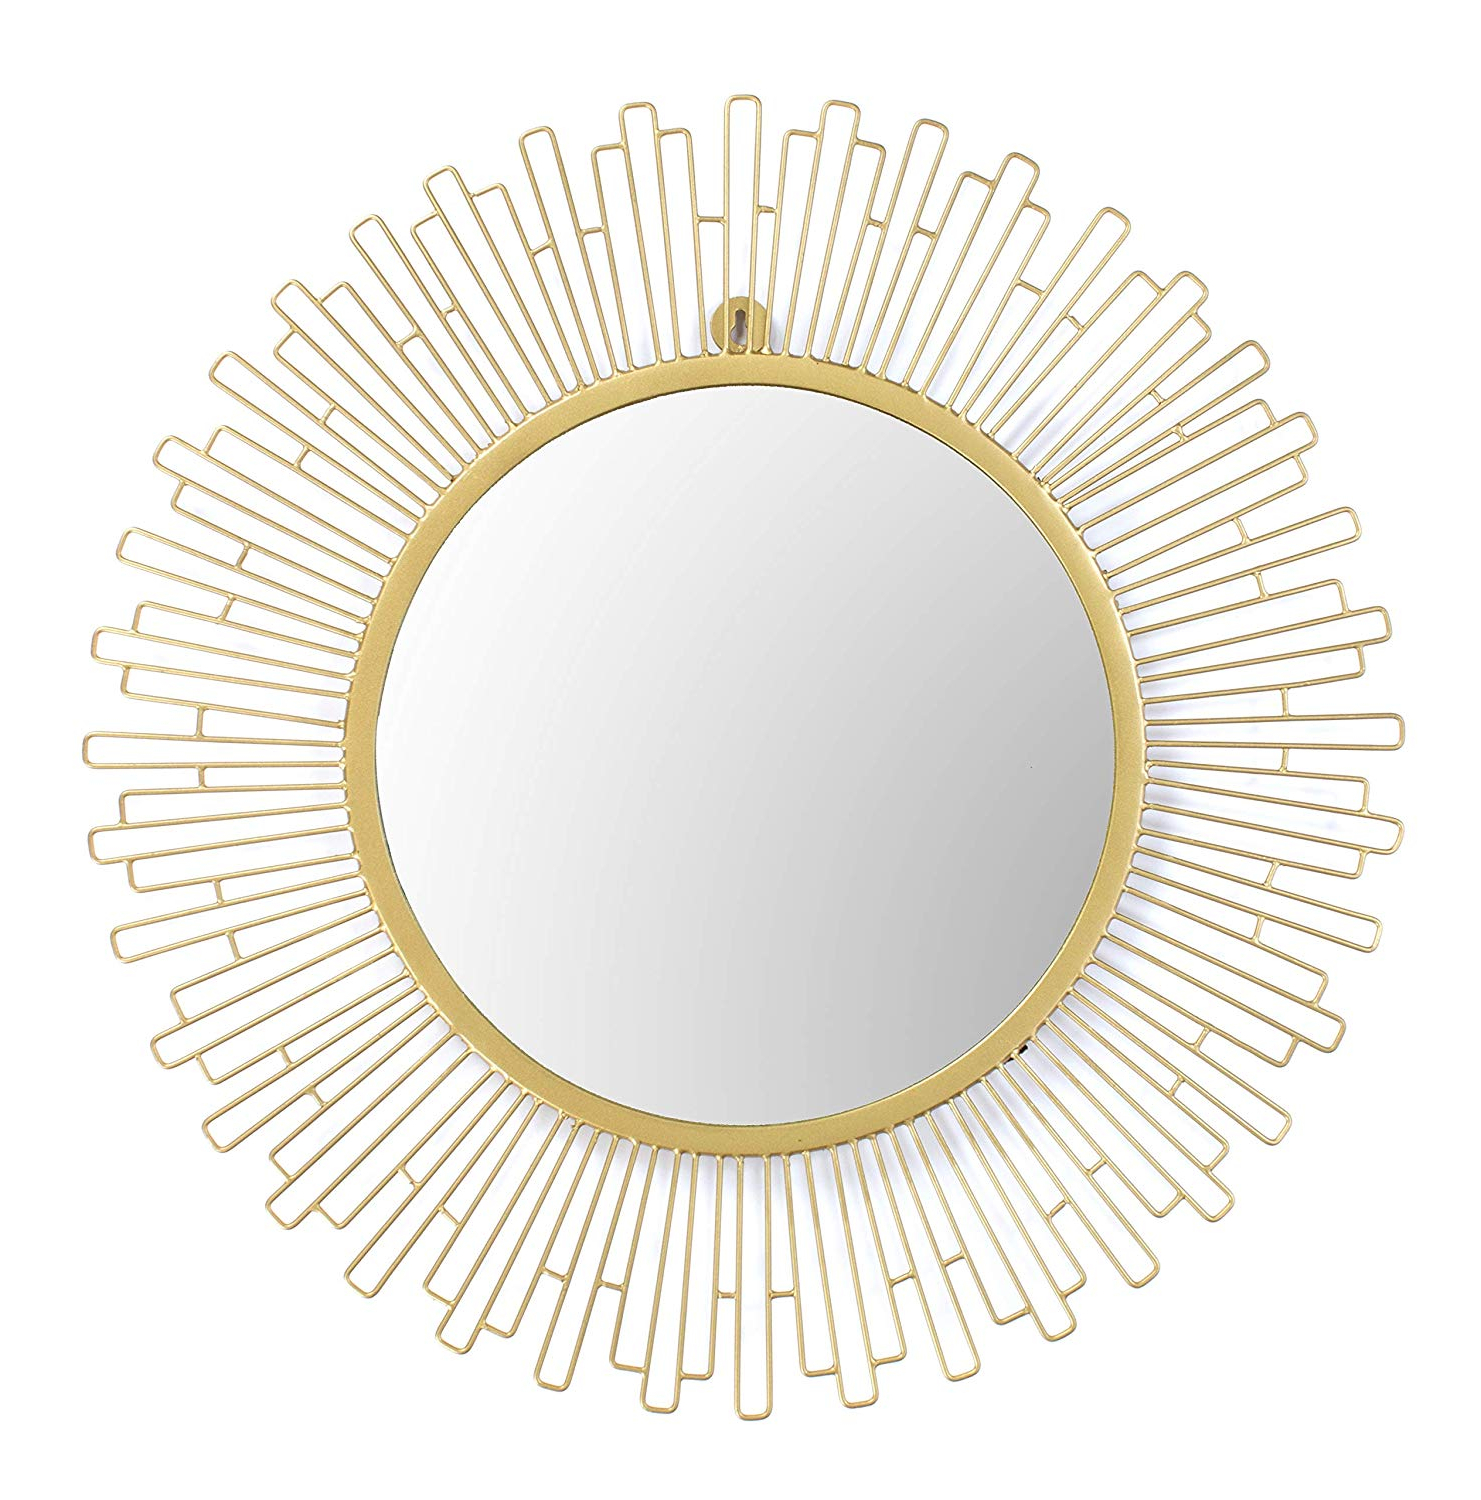 Most Popular Large Red Wall Mirrors Within Amazon: Red Fig Home Wall Mirror Décor – Decorative Gold Metal (View 9 of 20)